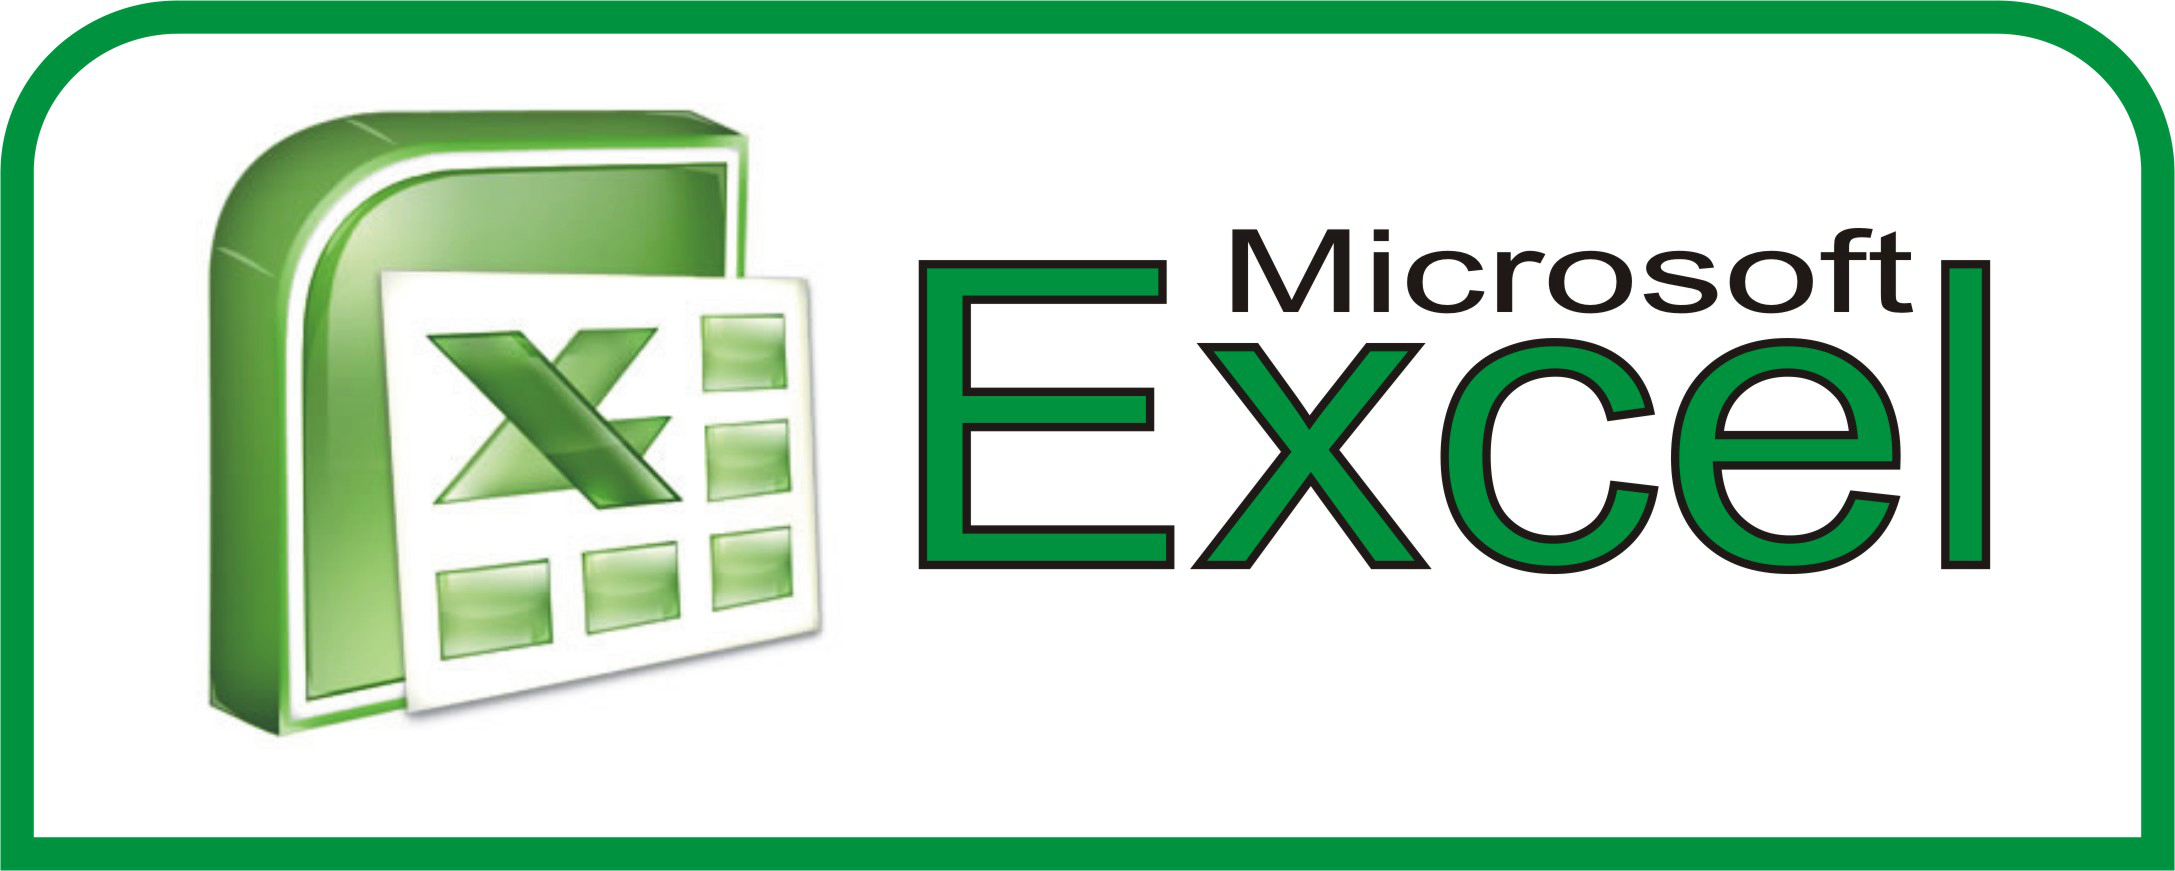 Ediblewildsus  Remarkable  Excel Shortcuts You Probably Didnt Know About  Techdissected With Fair Simple Petty Cash Book In Excel Besides Dashboard In Excel Free Download Furthermore Excel Count Filled Cells With Divine Microsoft Excel Create Report Also Export Data From Access To Excel In Addition Simple Budget Template Excel And Make Address Labels From Excel As Well As Workout Log Excel Template Additionally Xml In Excel  From Techdissectedcom With Ediblewildsus  Fair  Excel Shortcuts You Probably Didnt Know About  Techdissected With Divine Simple Petty Cash Book In Excel Besides Dashboard In Excel Free Download Furthermore Excel Count Filled Cells And Remarkable Microsoft Excel Create Report Also Export Data From Access To Excel In Addition Simple Budget Template Excel From Techdissectedcom